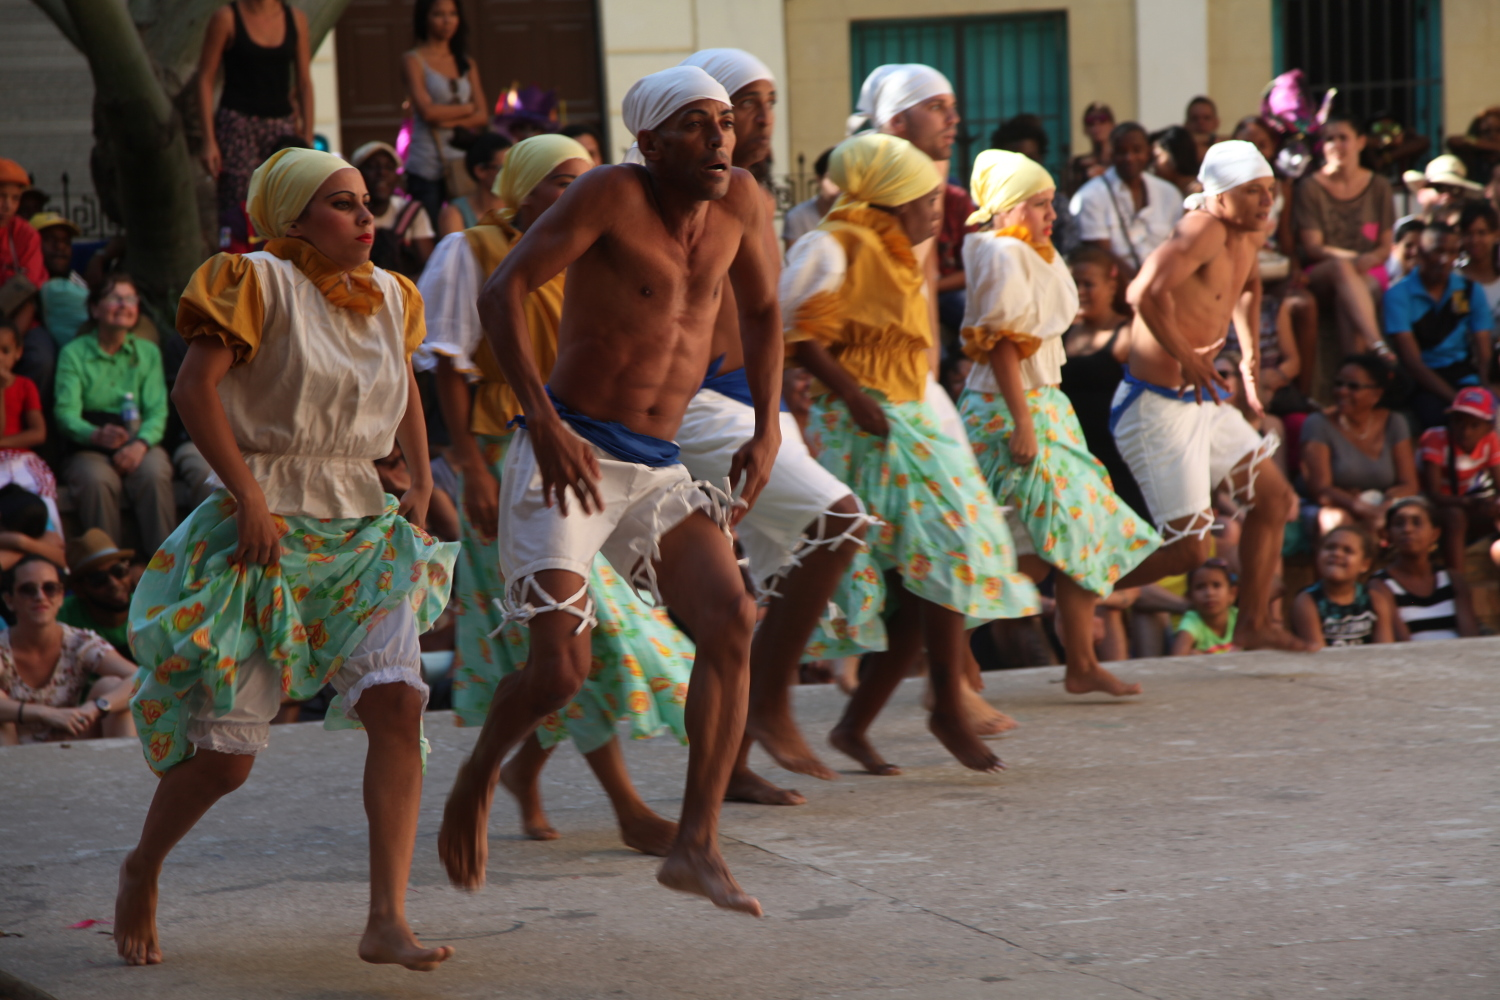 heidi_duckler_dance_theatre_in_cuba_5.jpg